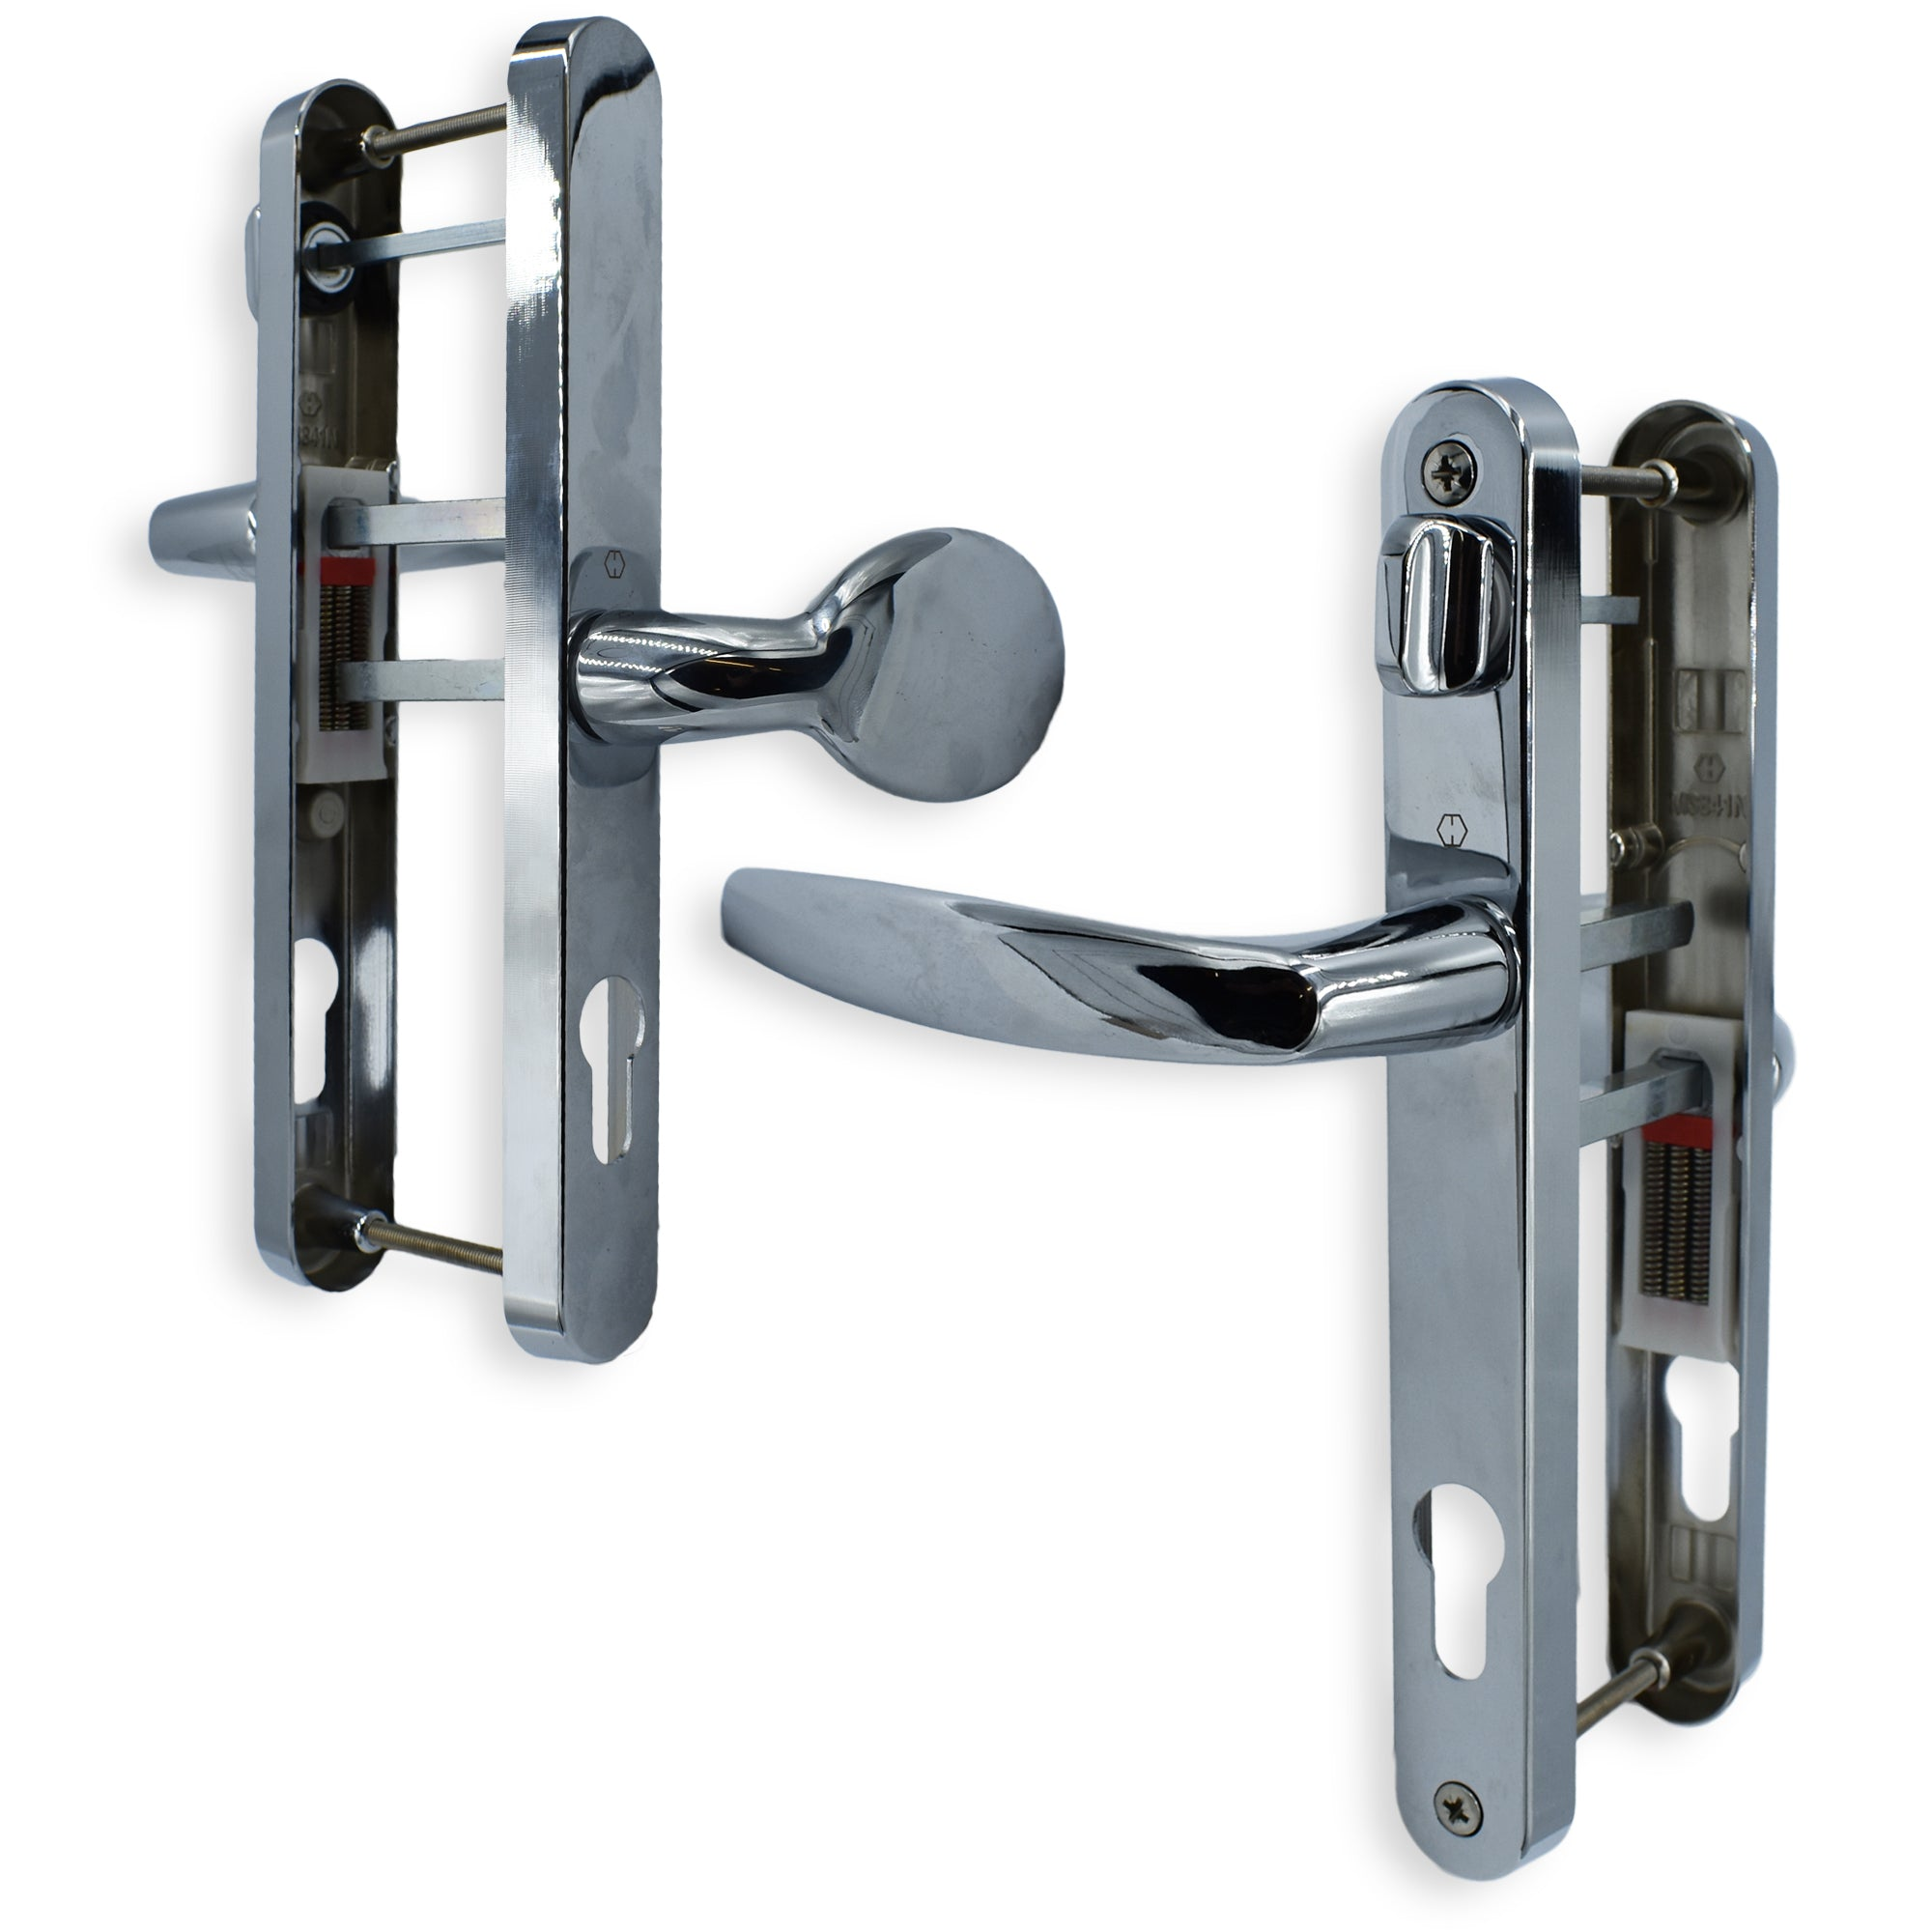 HOPPE UPVC DOOR HANDLE OFFSET 92mm 62mm PZ WITH SNIB 215mm CENTERS -  - Hoppe - UPVCSTORE